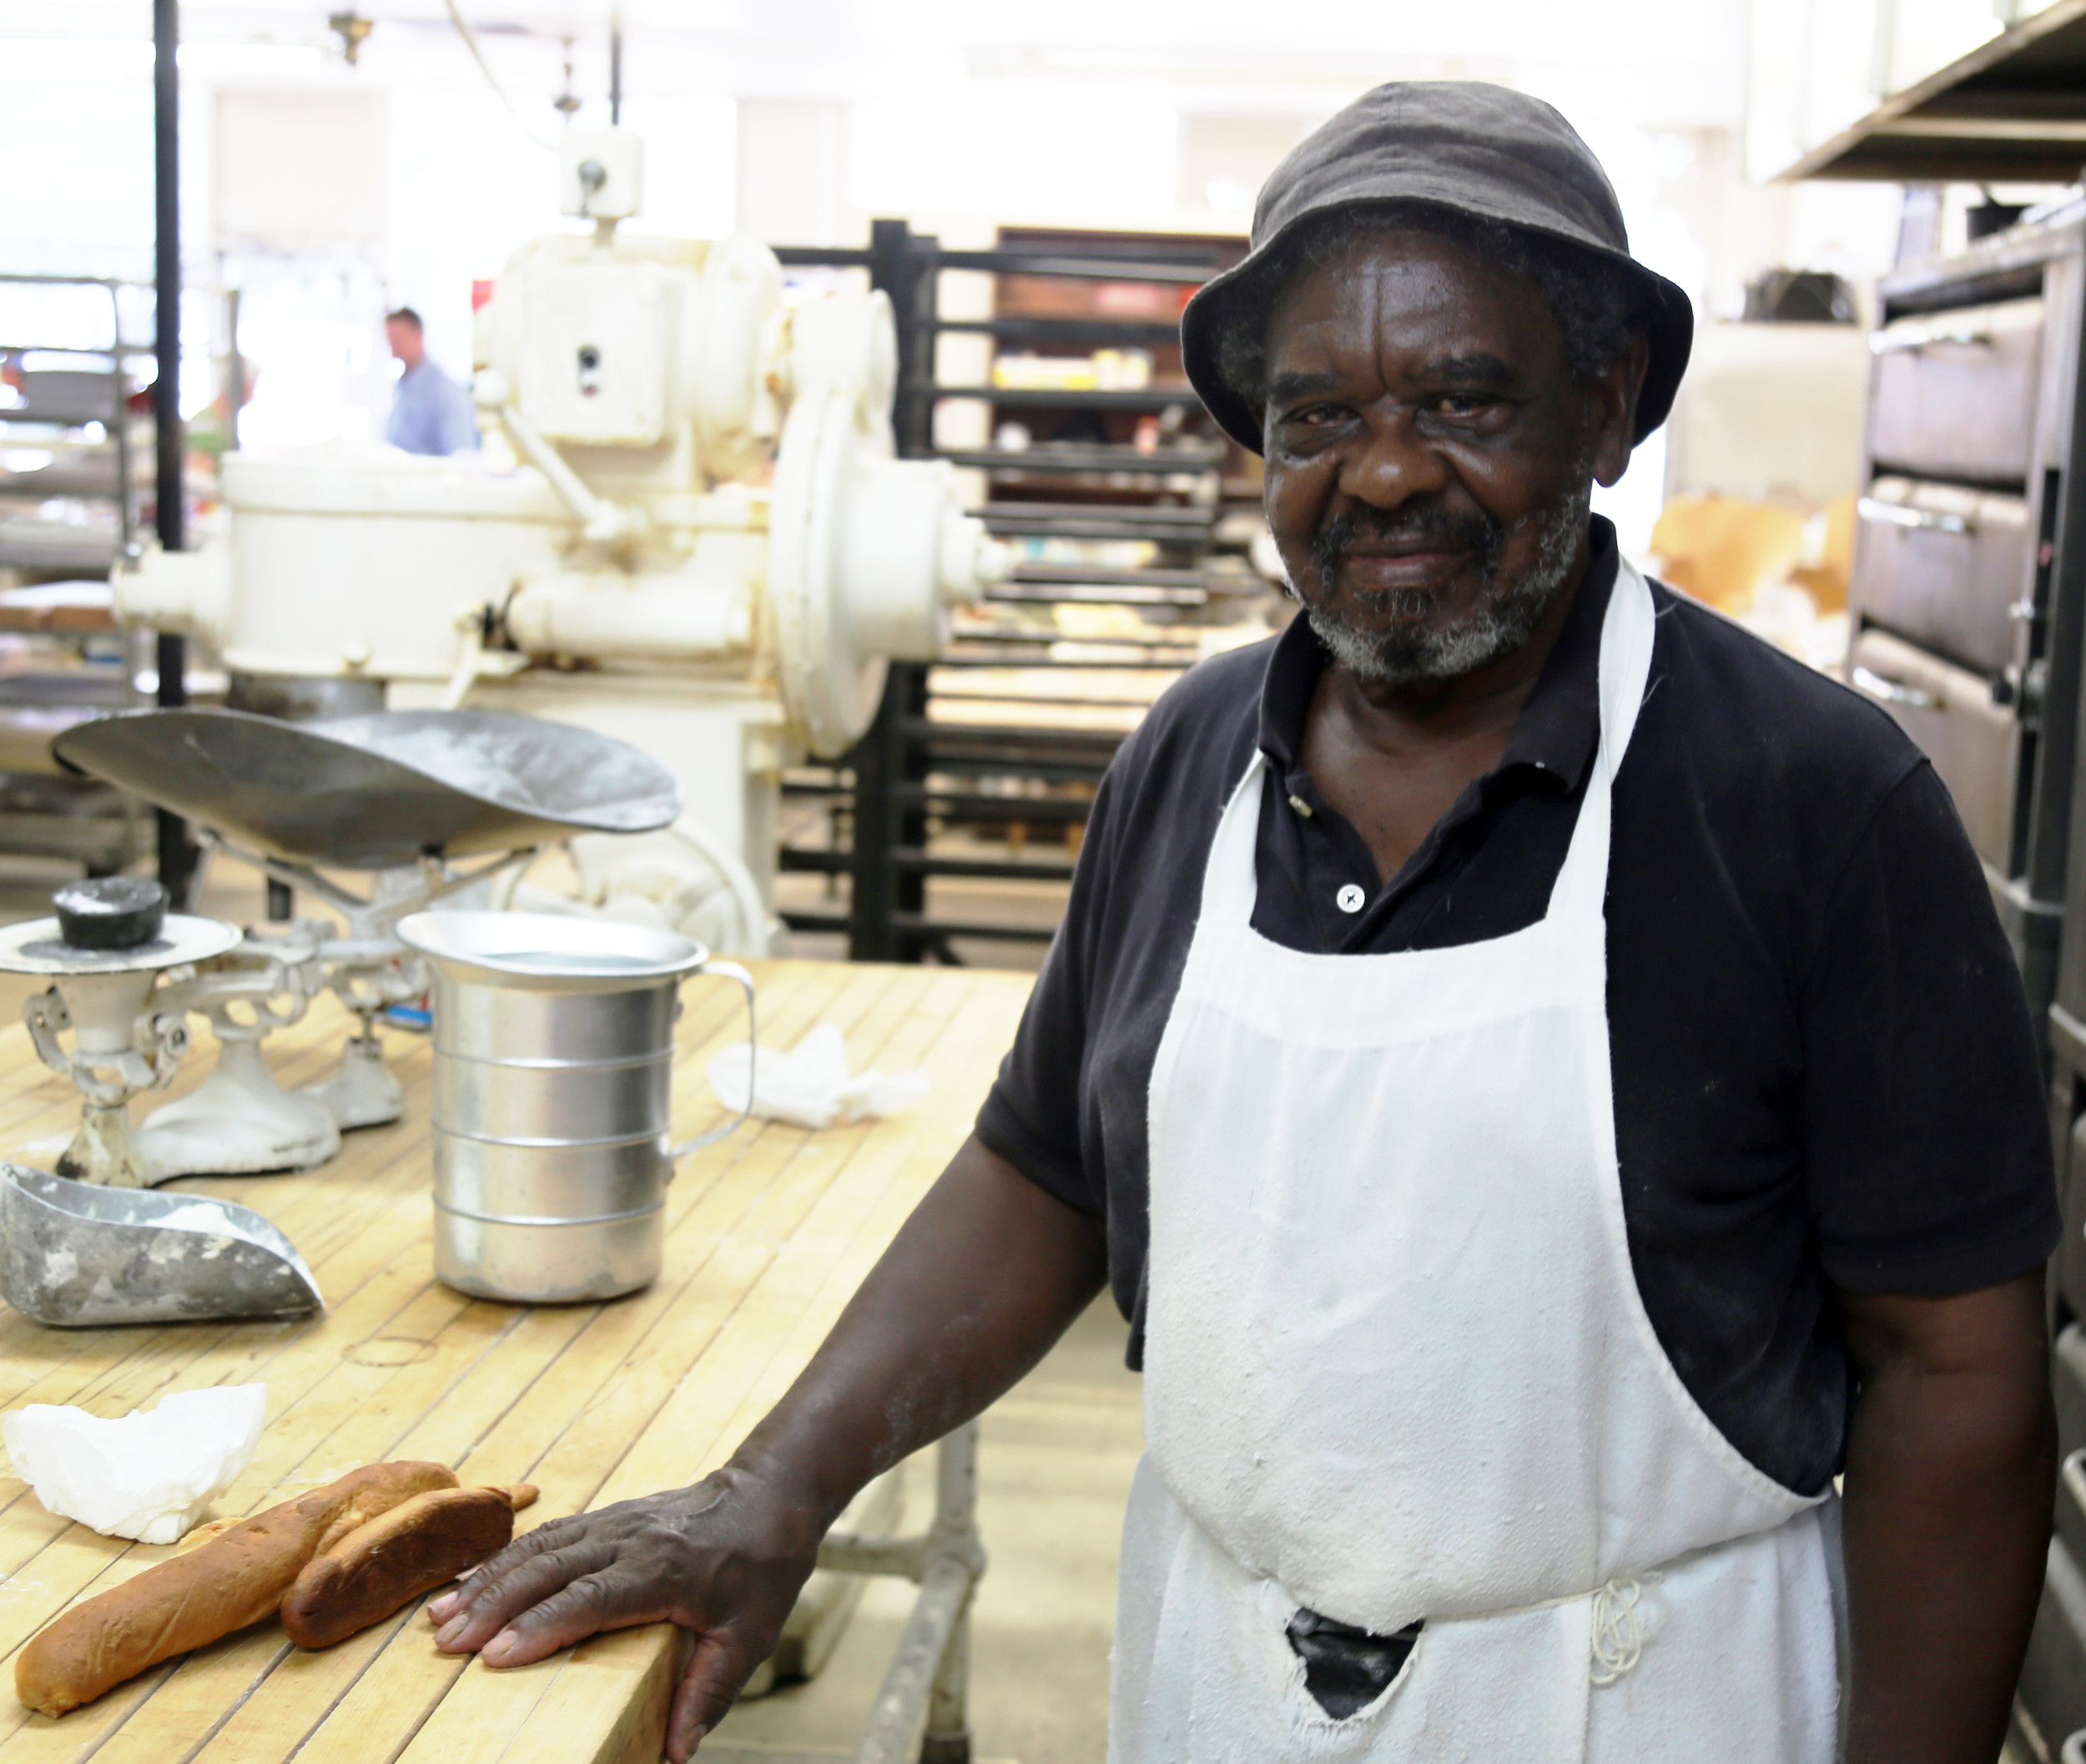 Bobby Robinson, 71, has been working at Perfection Bakery for 50-plus years and advises new fathers to encourage their children to work hard and follow their passion.